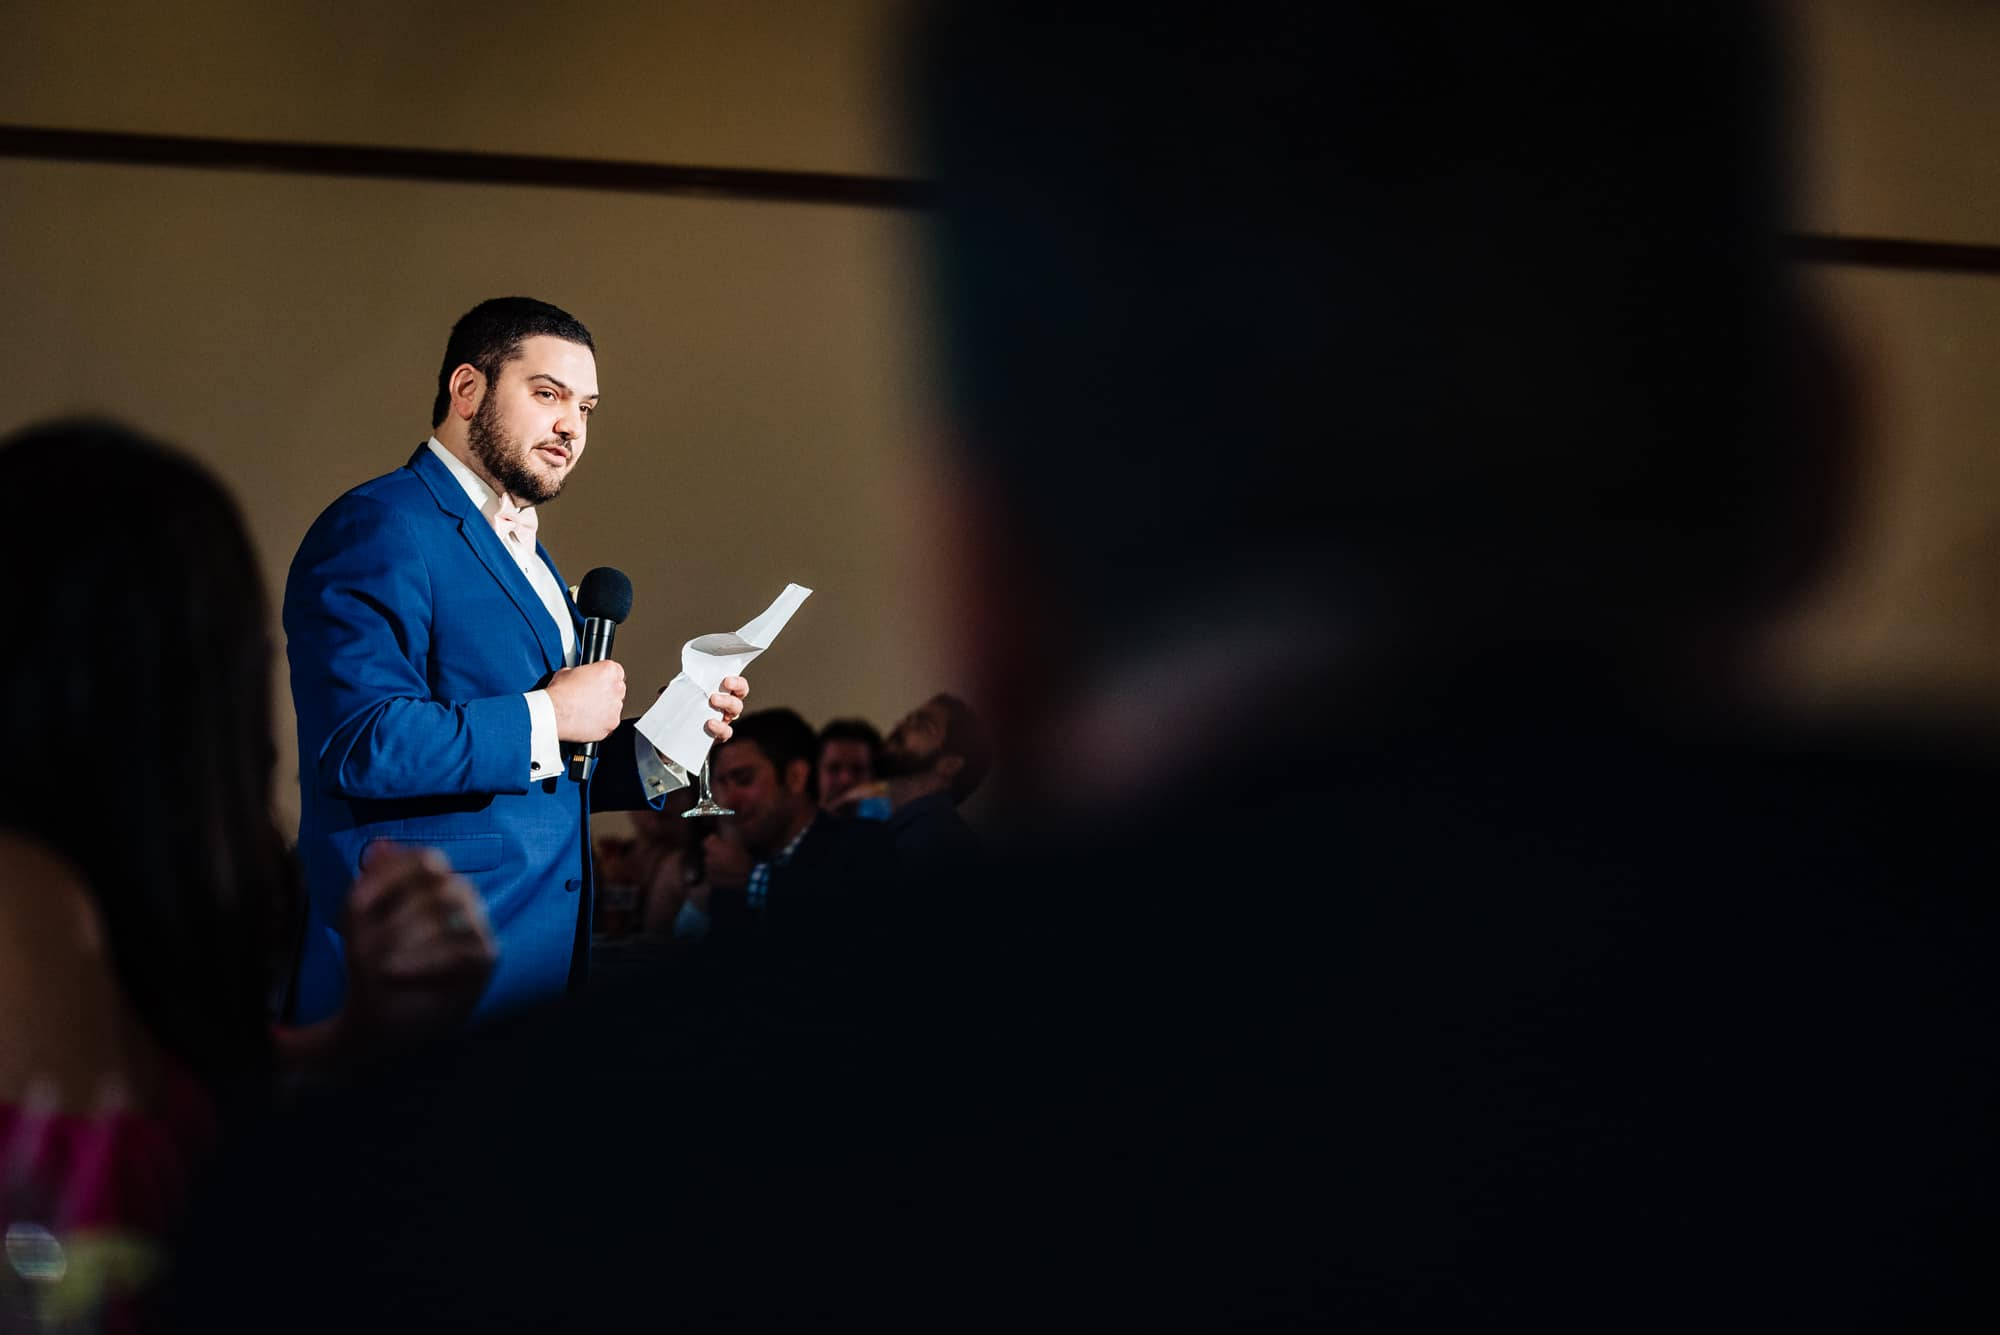 wedding reception, groomsmen hold microphone making a speech